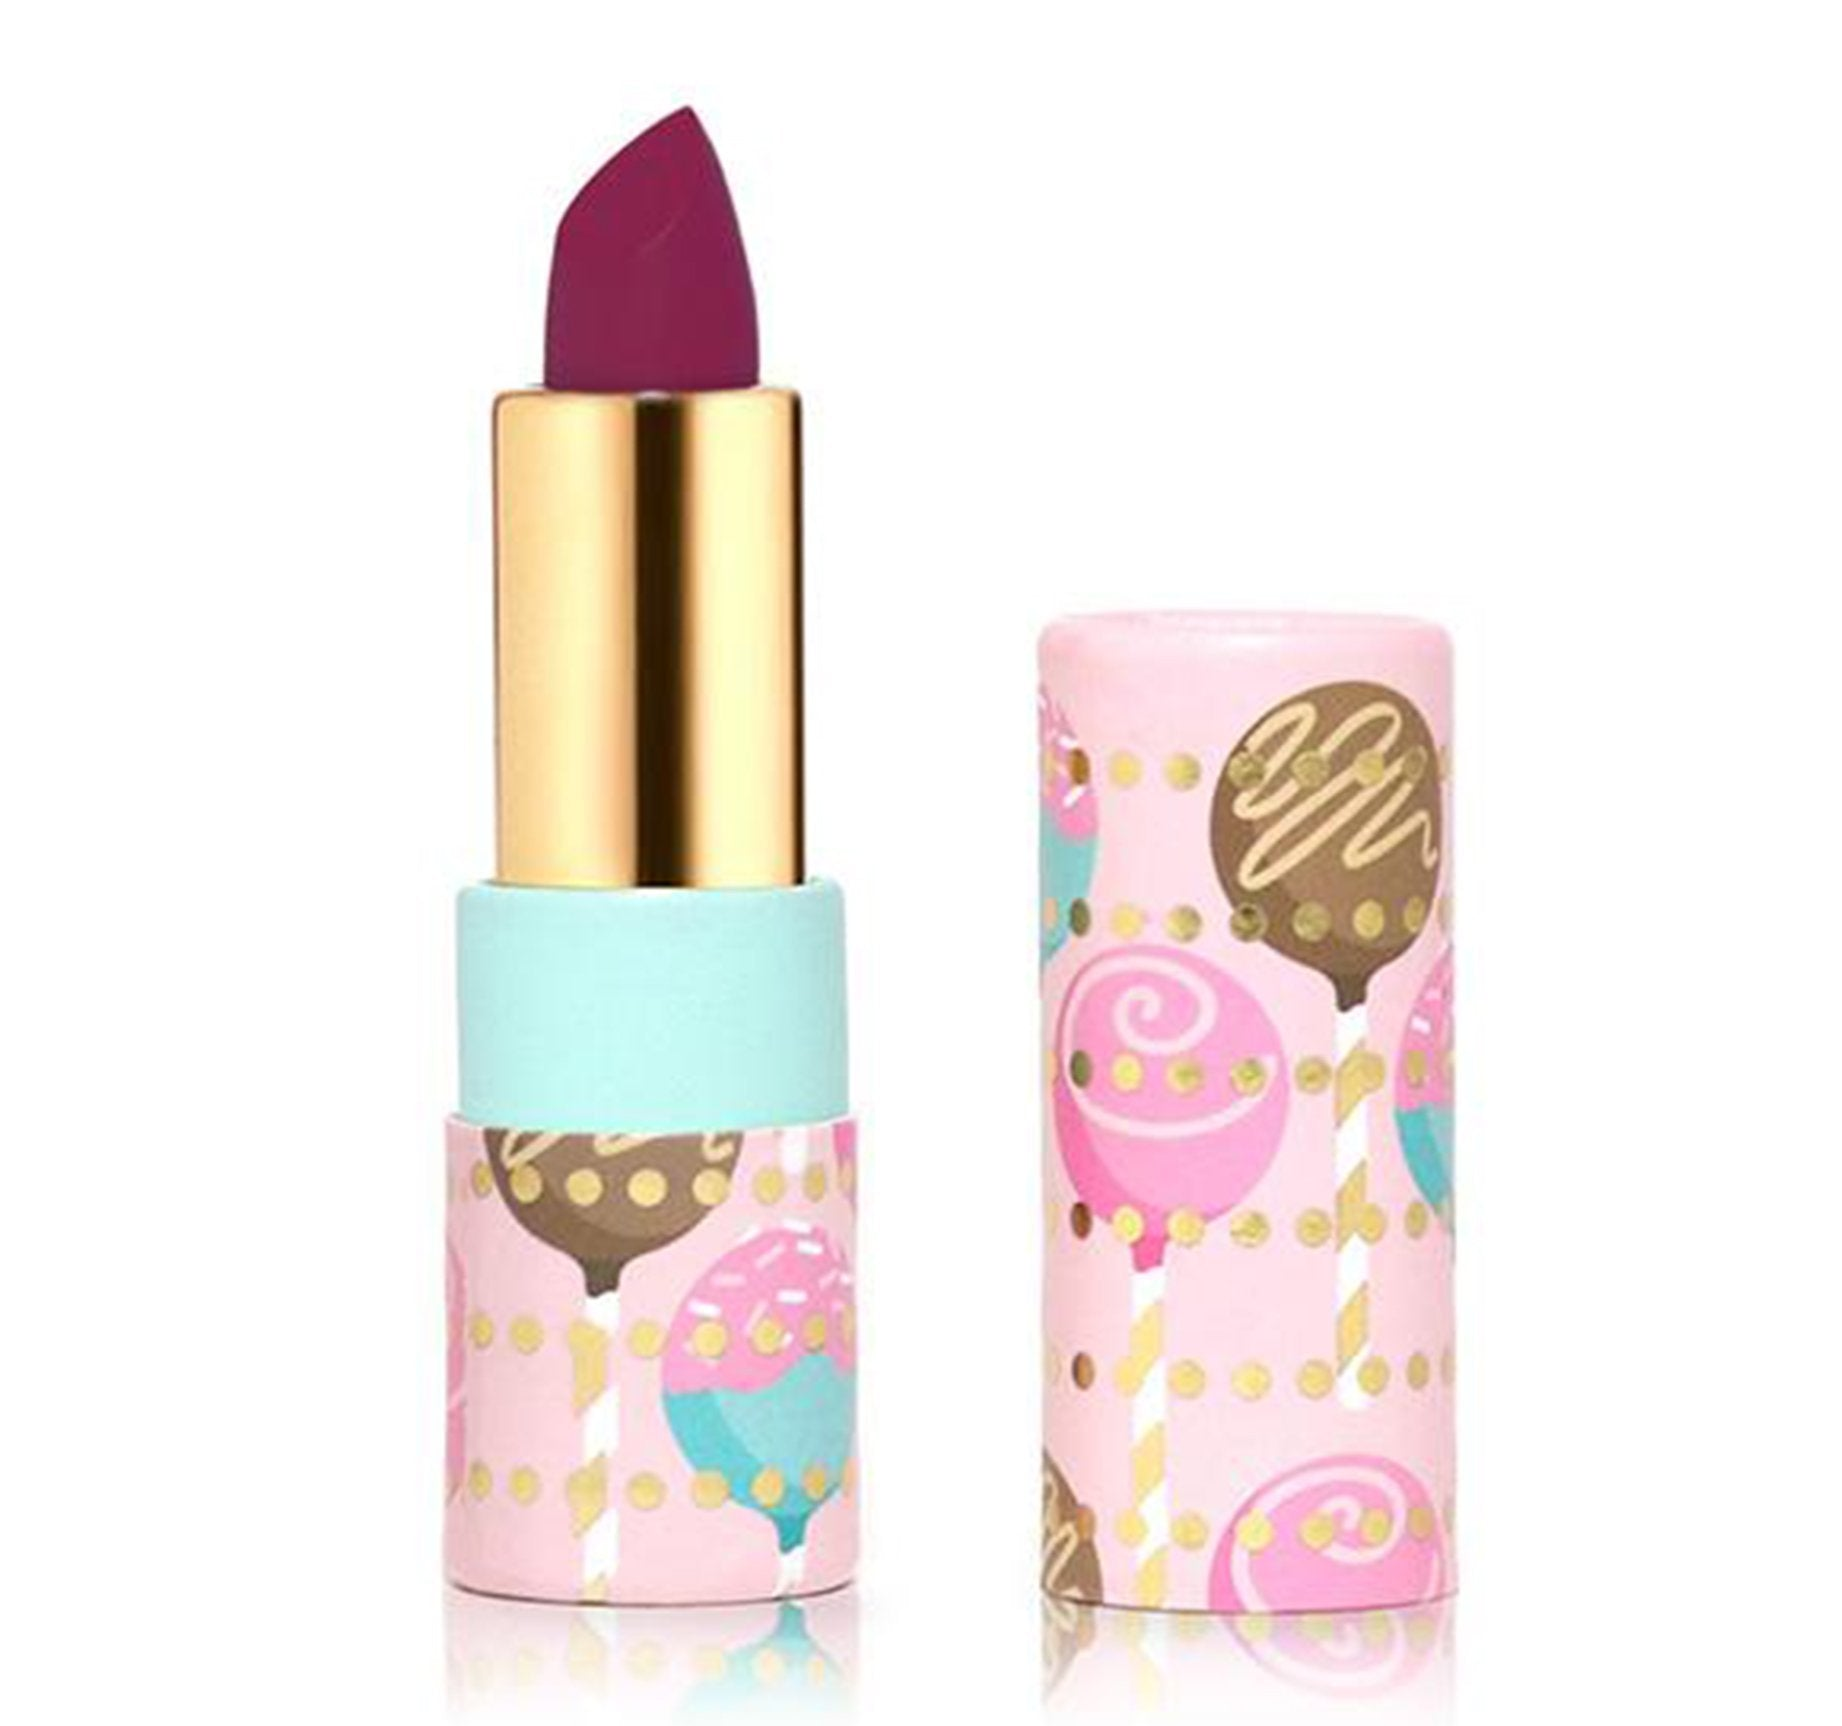 CAKE POP LIPPIE -FOREVER YUM, view larger image